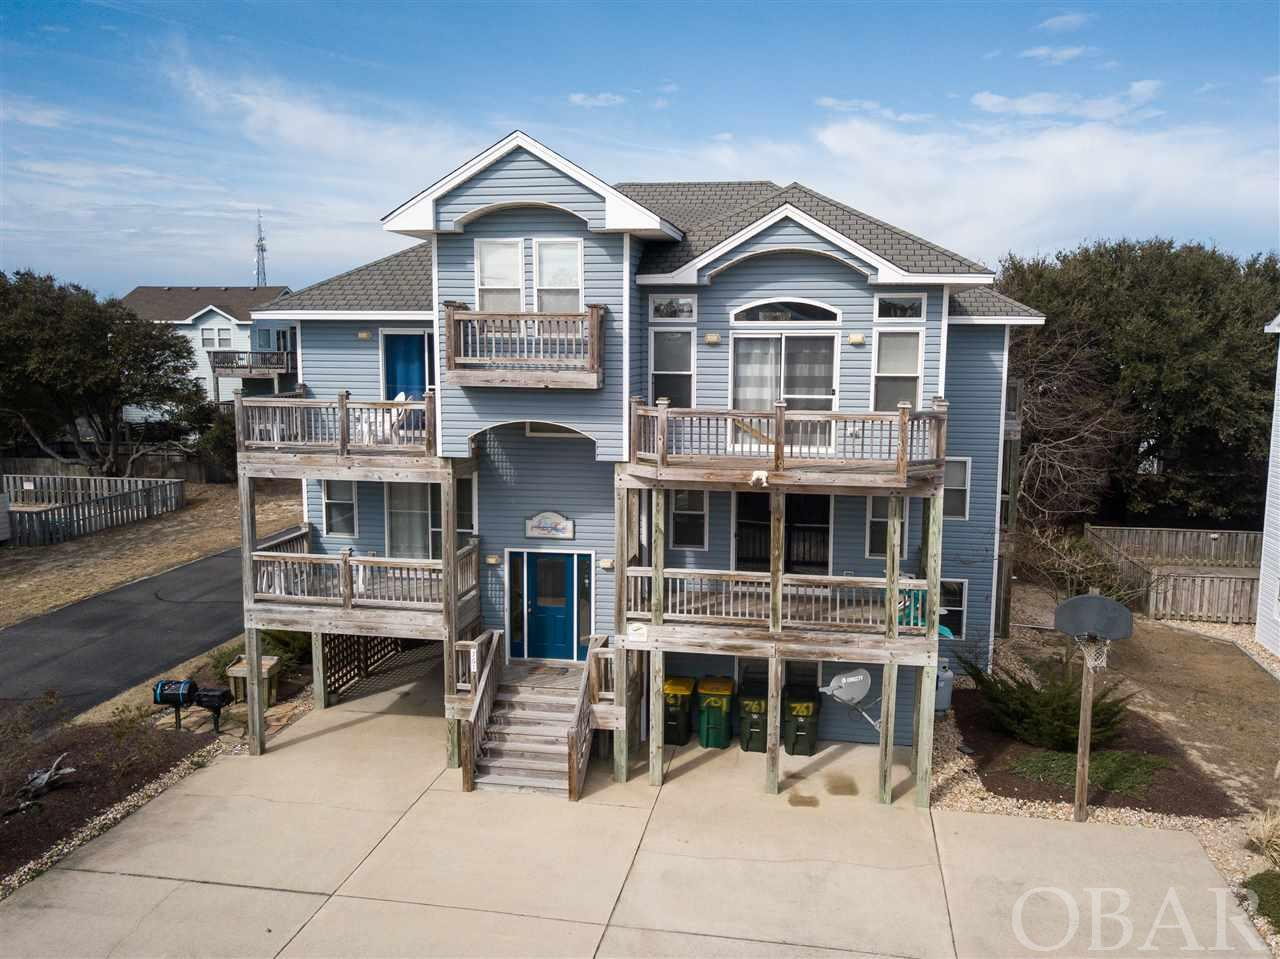 Corolla Nc Real Estate Listing Report Soles Realty Obx Real